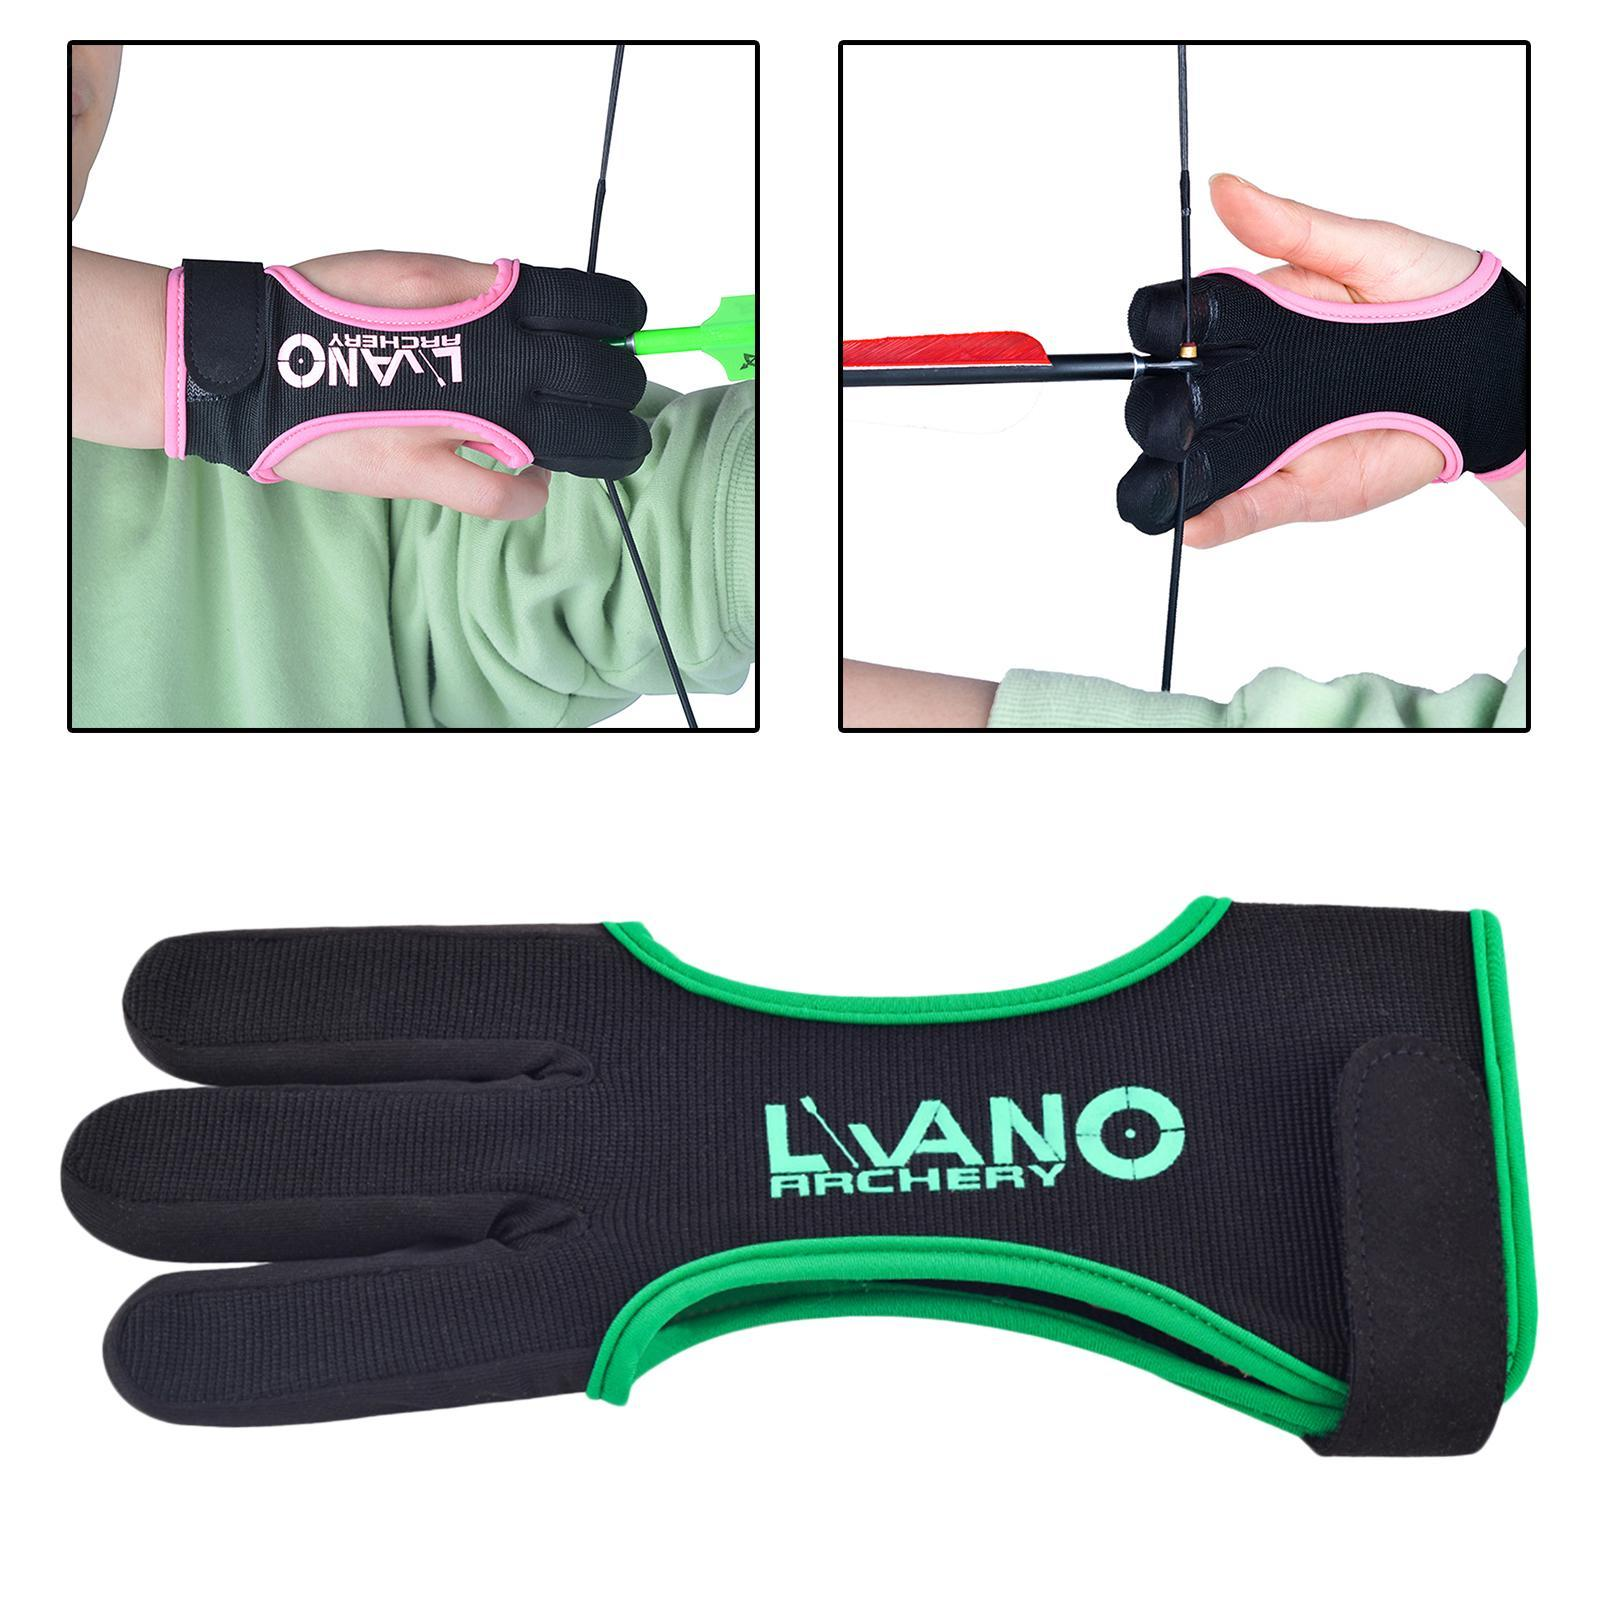 thumbnail 78 - Archery Glove for Recurve & Compound Bow 3 Finger Guard for Women Men Youth